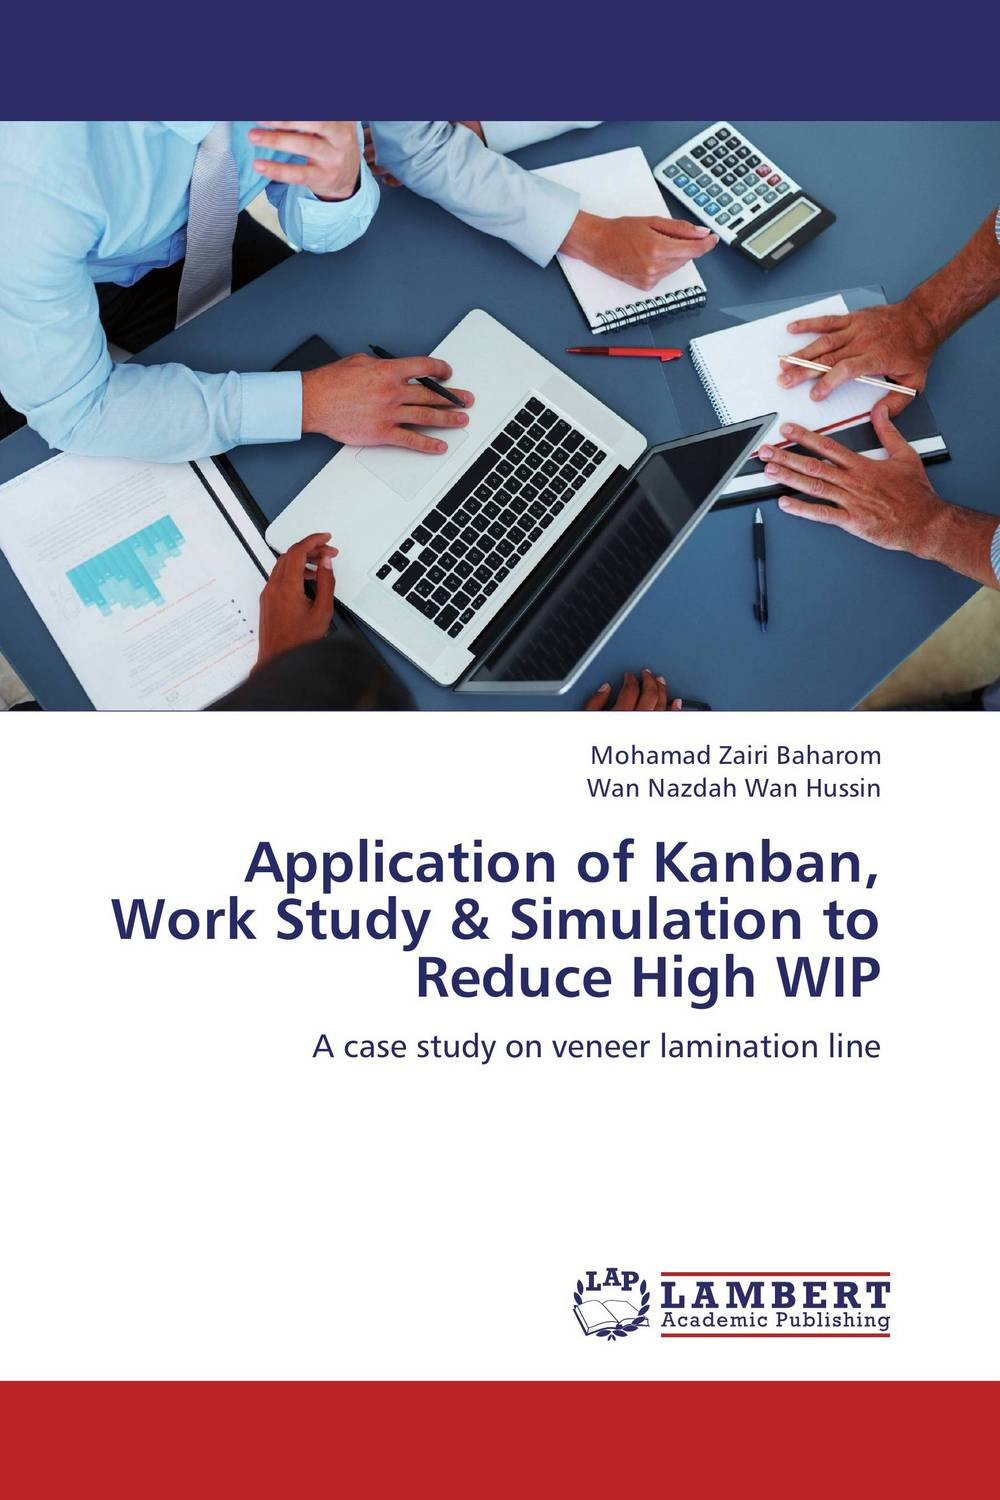 Application of Kanban, Work Study & Simulation to Reduce High WIP the application of wavelets methods in stefan problem